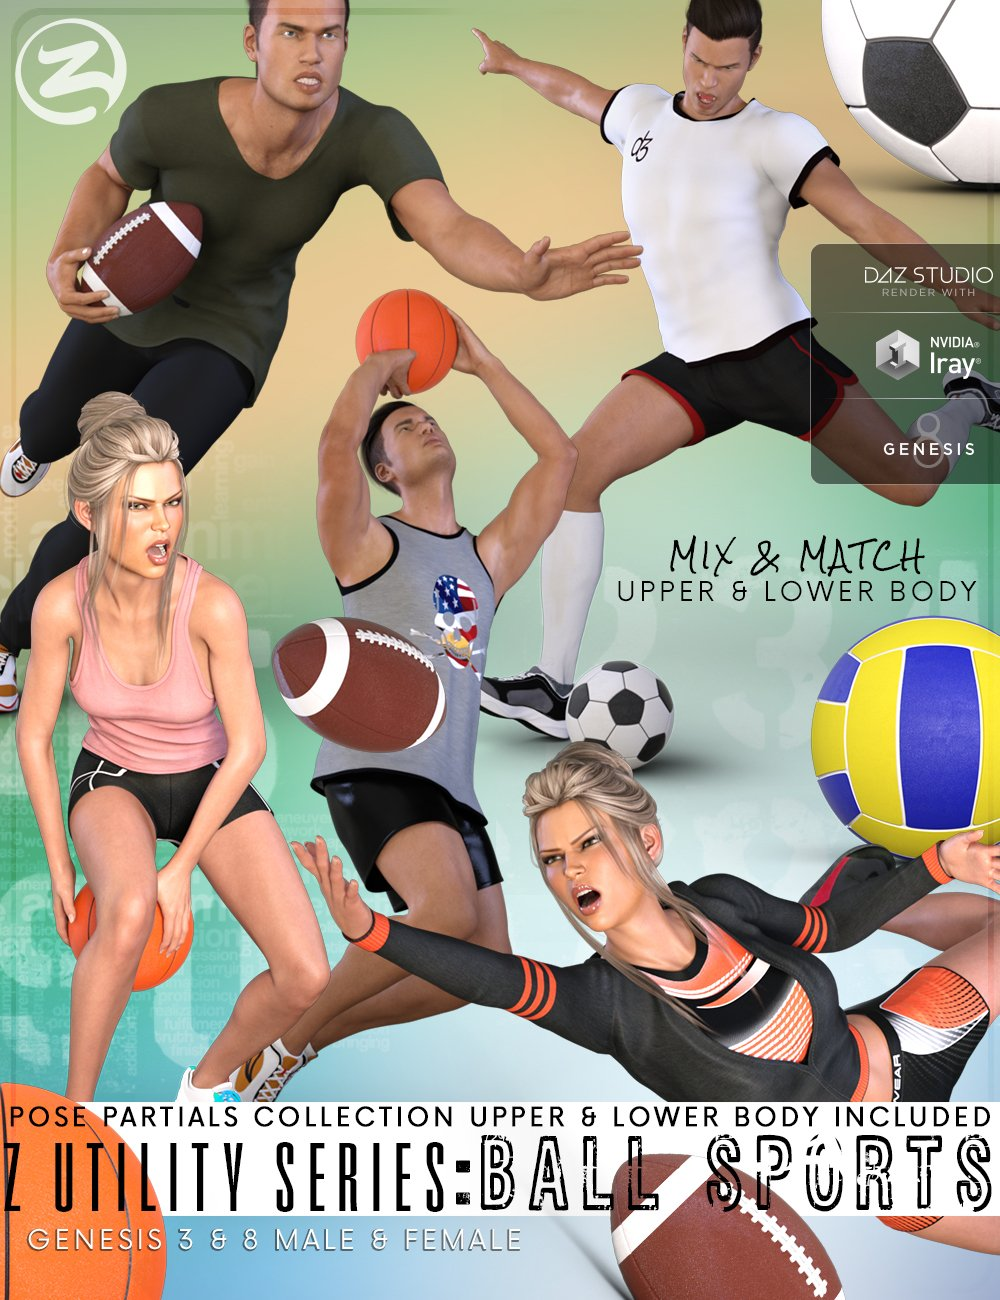 Z Utility Series : Ball Sports - Props, Poses and Partials for Genesis 3 and 8 by: Zeddicuss, 3D Models by Daz 3D